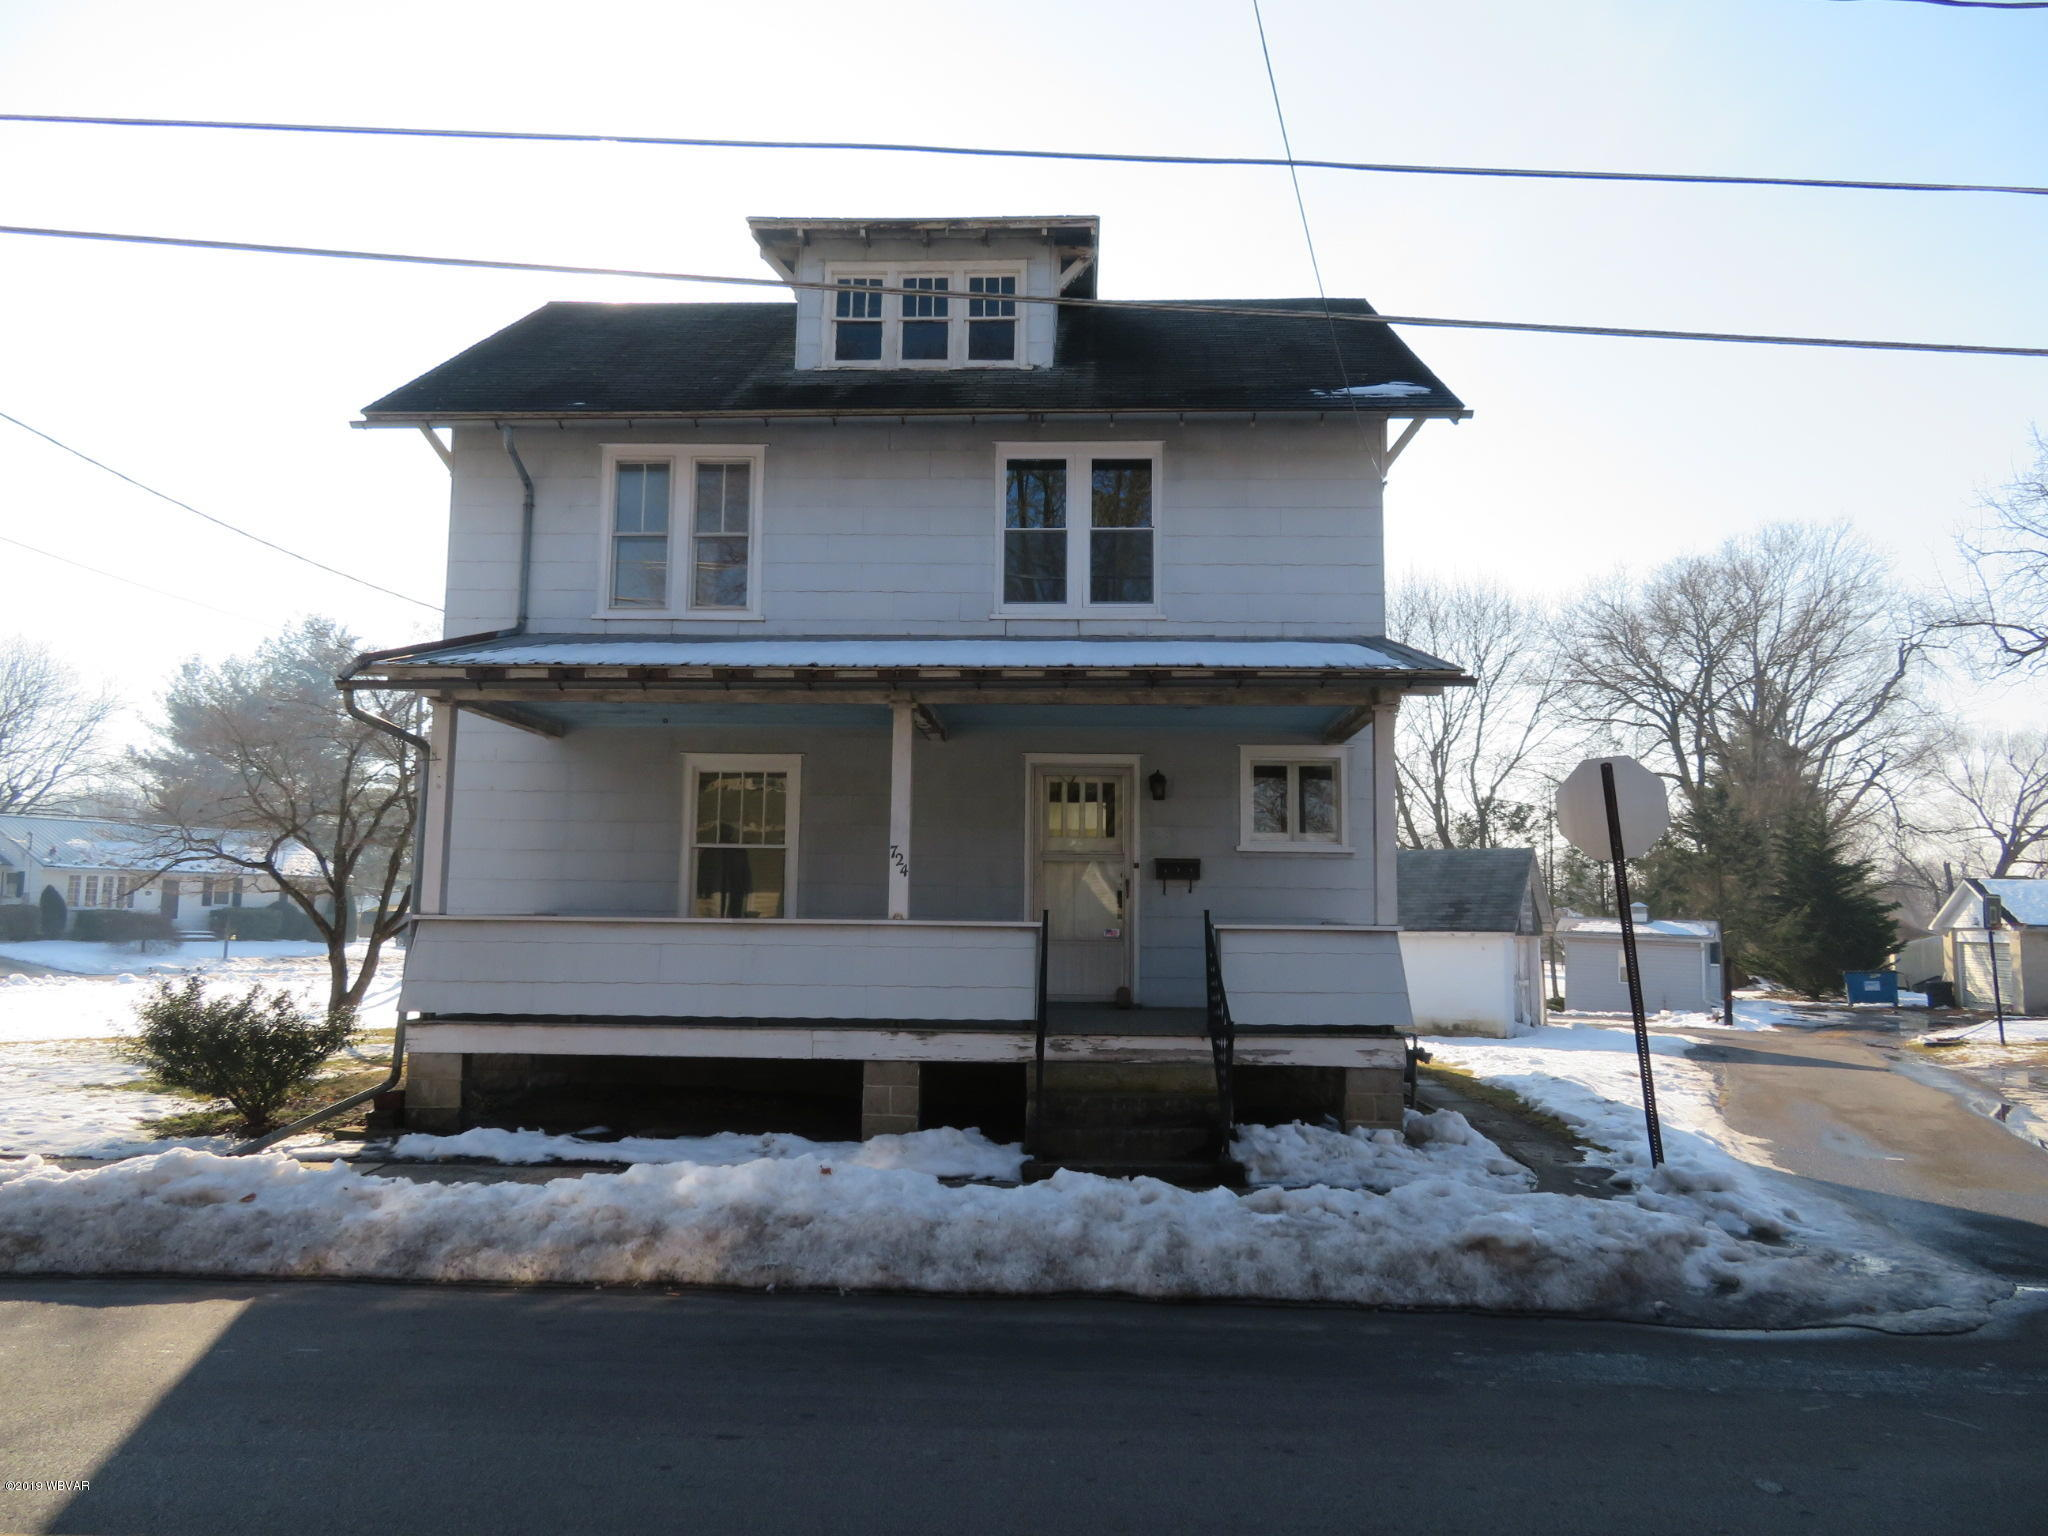 724 SHAKESPEARE AVENUE,Milton,PA 17847,3 Bedrooms Bedrooms,1.5 BathroomsBathrooms,Residential,SHAKESPEARE,WB-86406